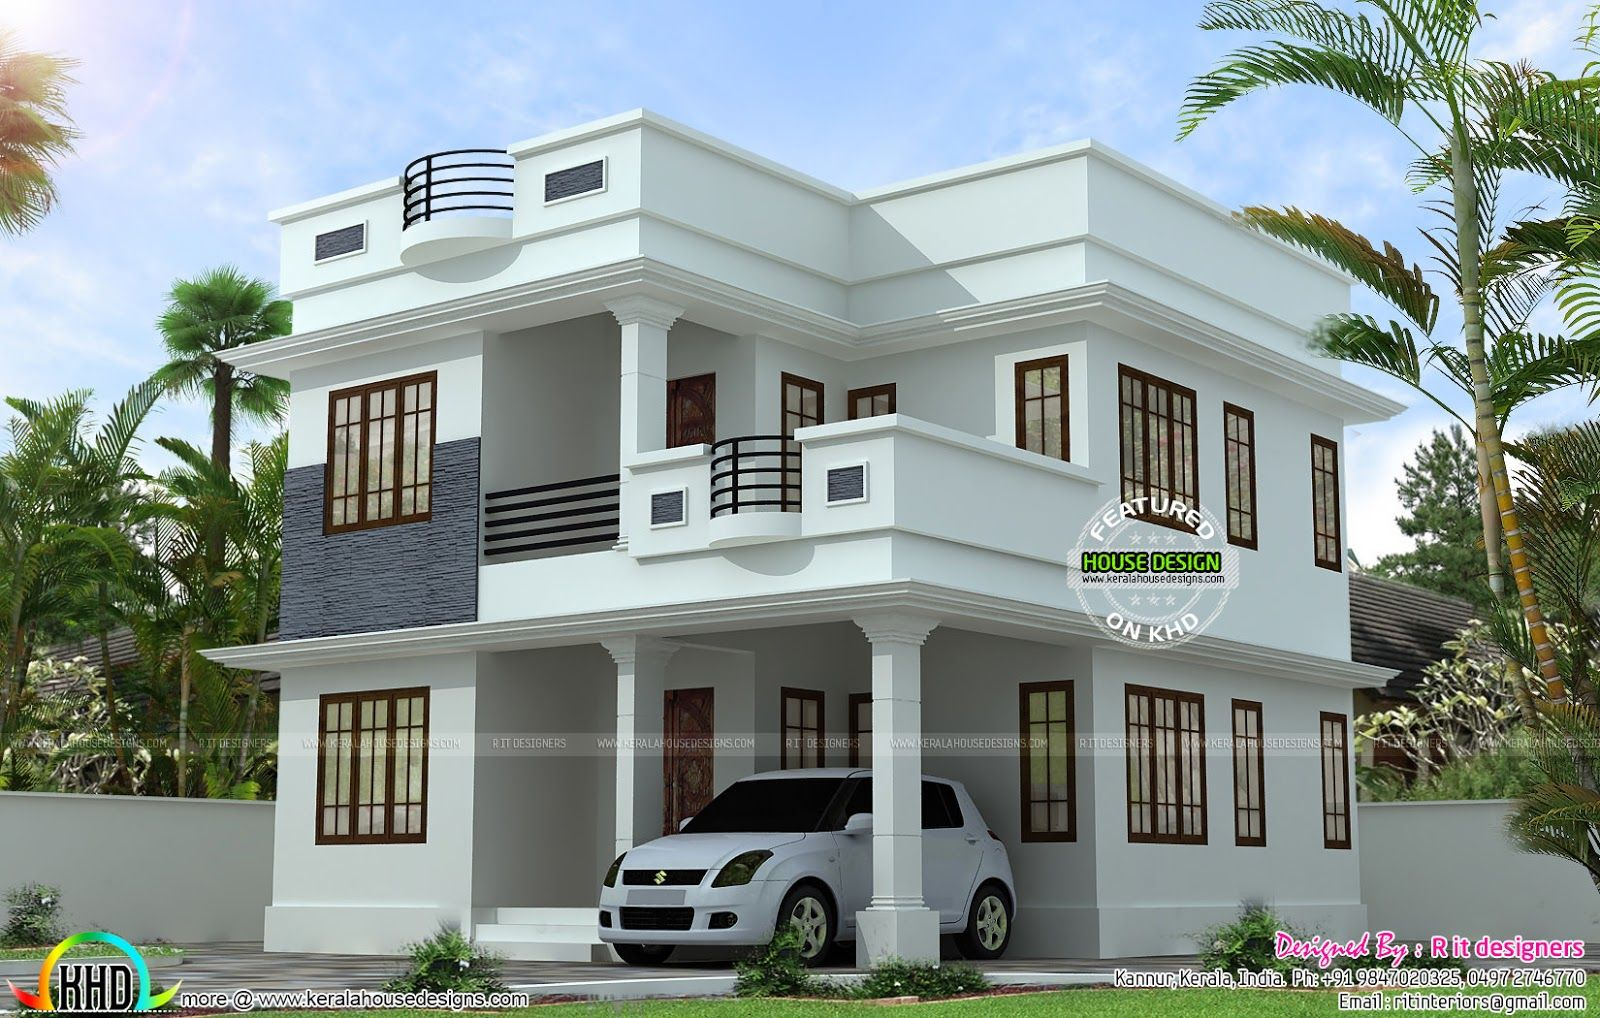 Home Design Of India Home Design Decor In 2019 Interior Design For House Home